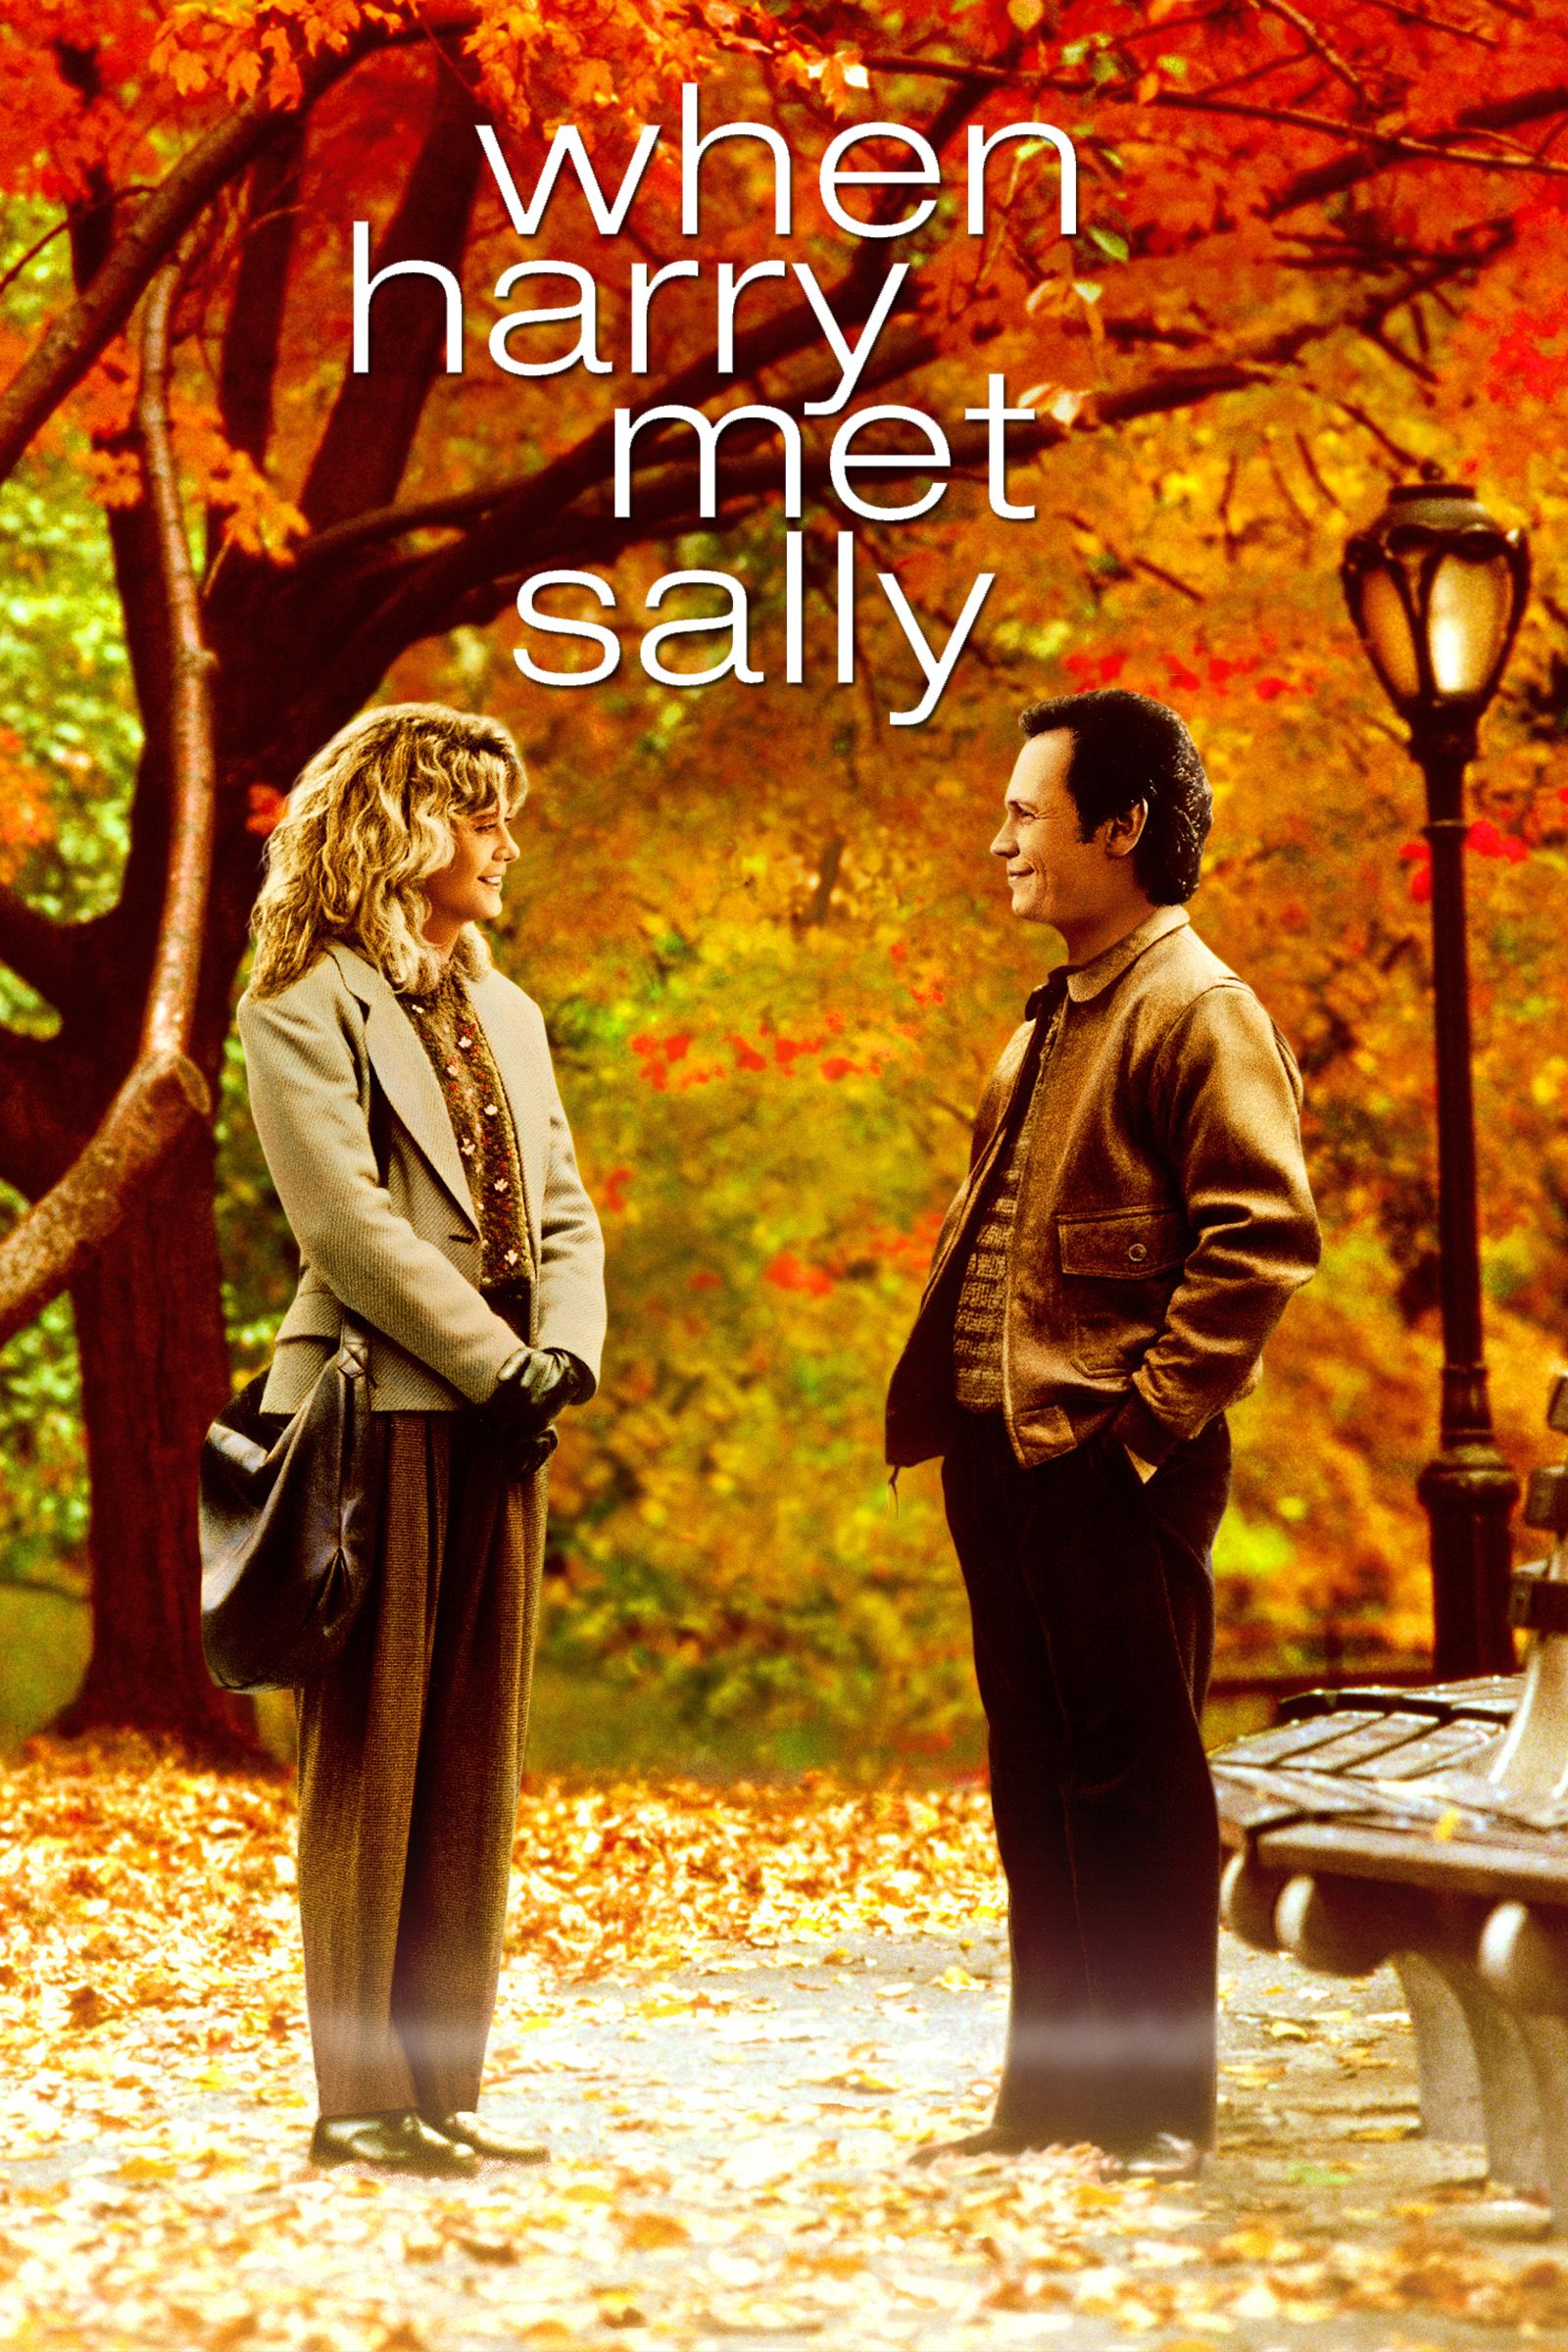 quand harry rencontre sally streaming dailymotion)